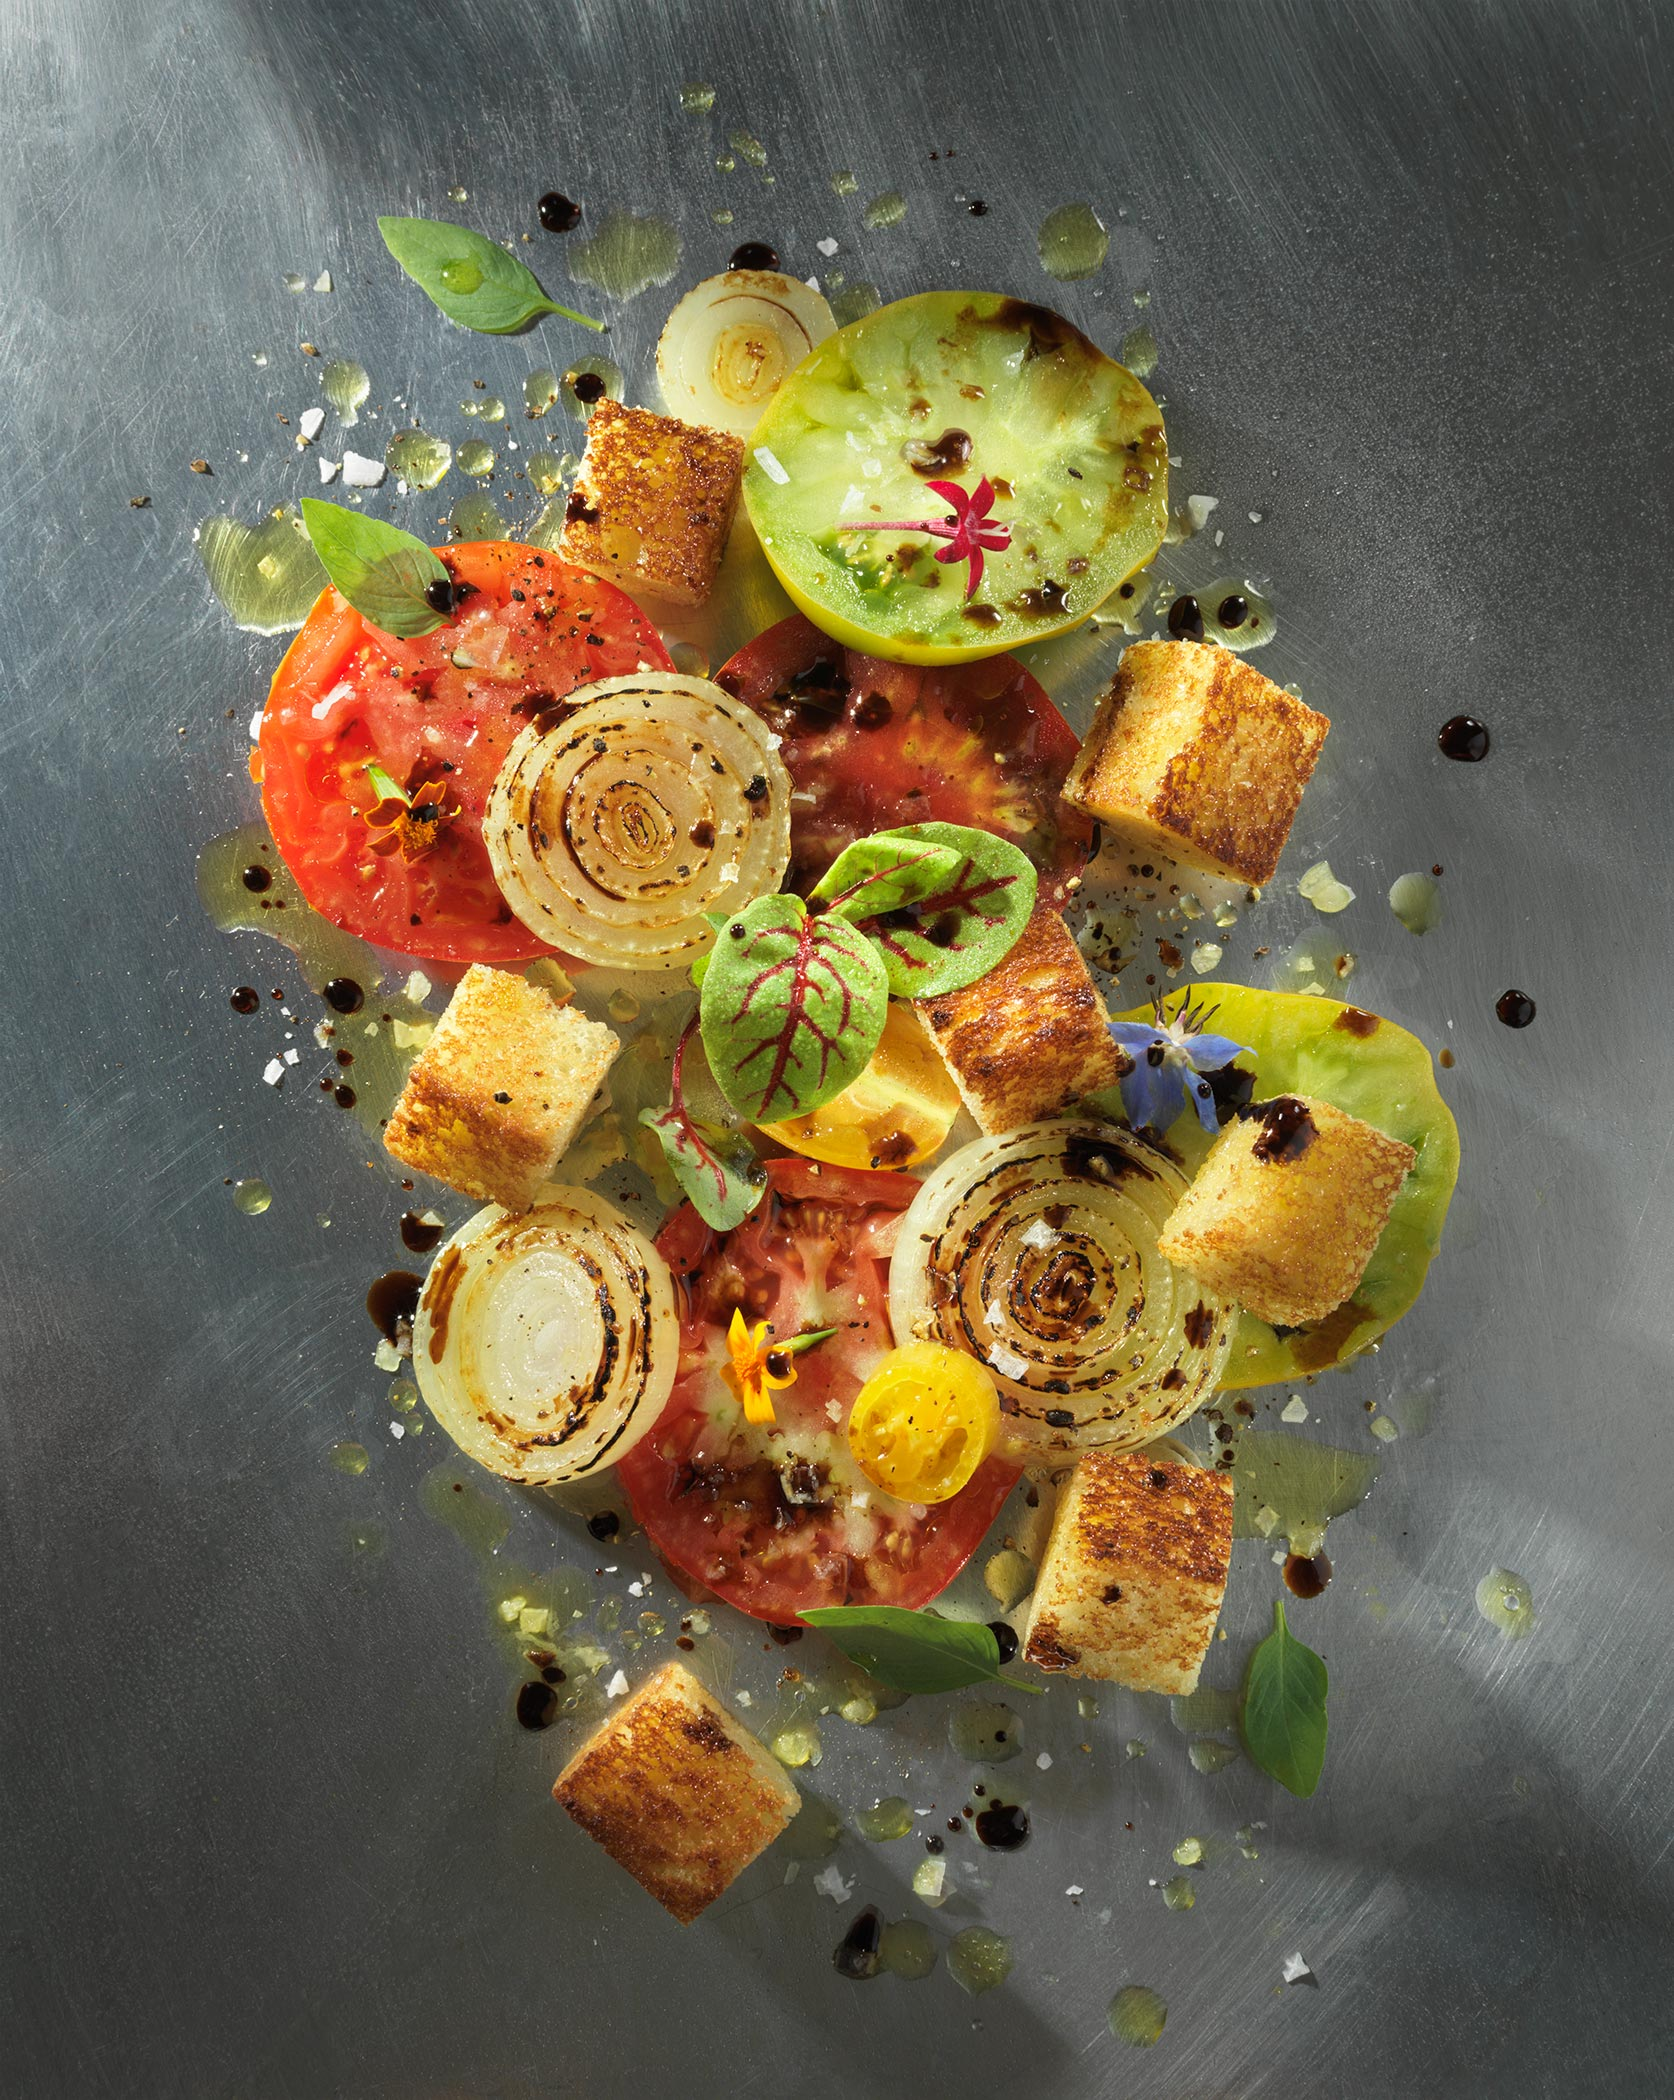 Bread Salad | Steve Hansen Images Seattle Food Photographer